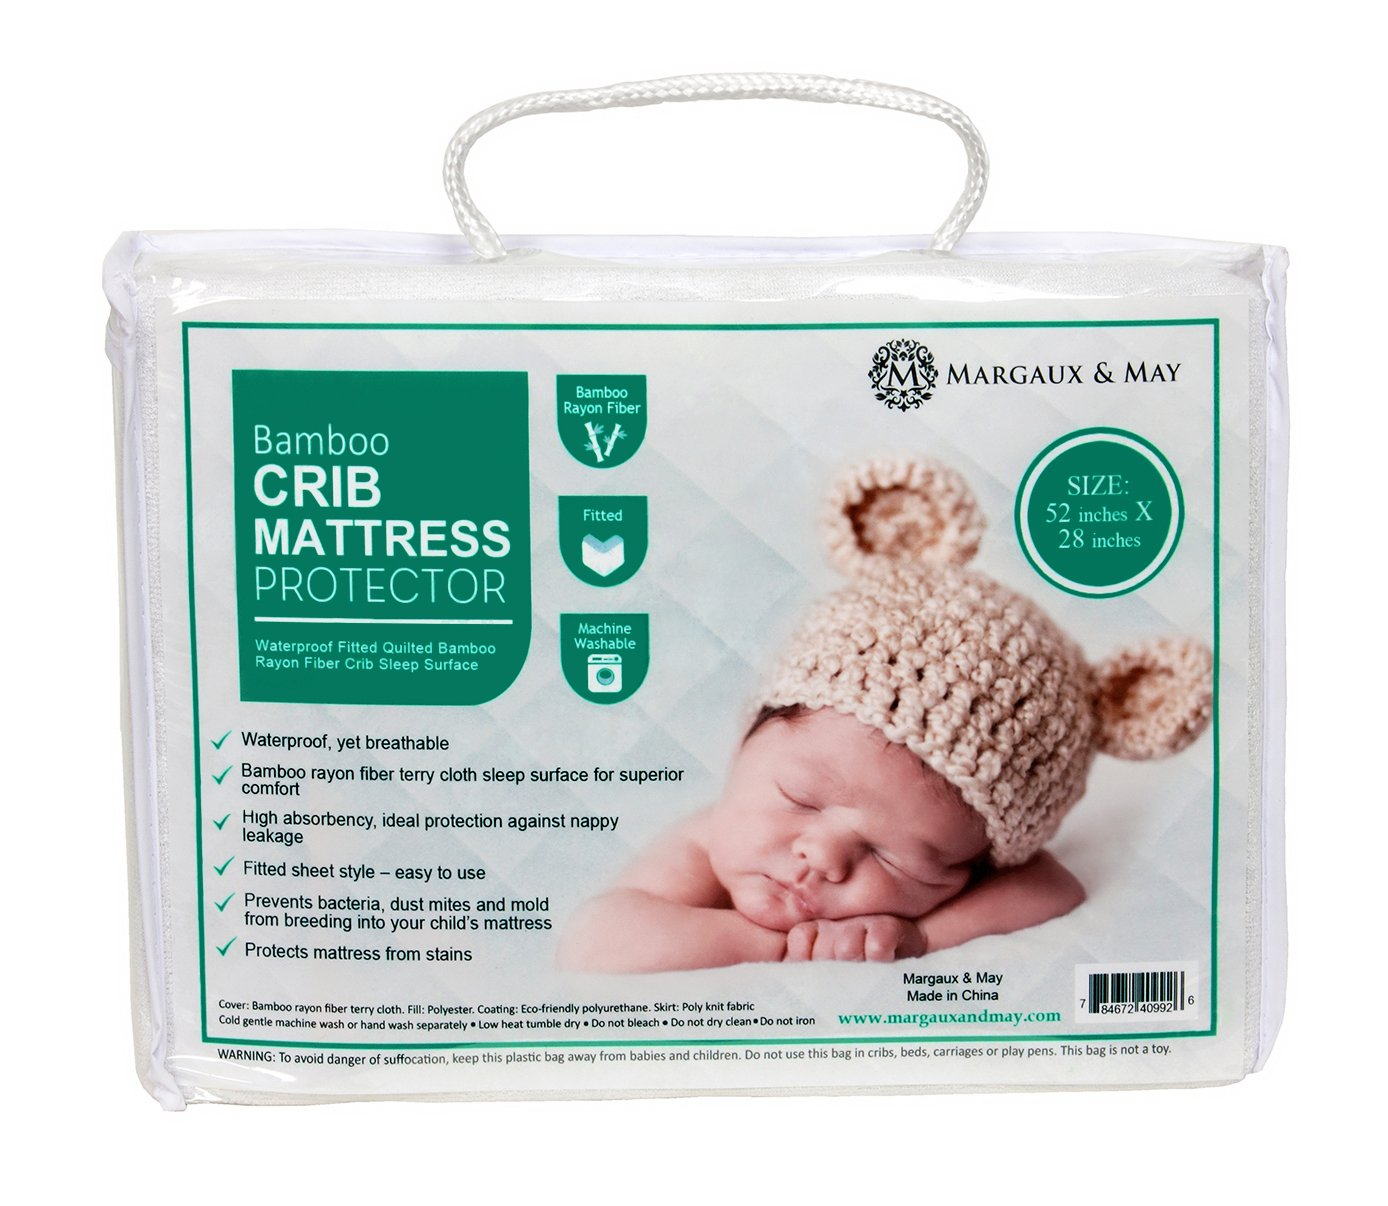 Crib Mattress Protector Pad by Margaux & May - Waterproof, Ultra Soft - Dryer Friendly - Deluxe Bamboo Rayon - Fitted Quilted Pad - Absorbent Stain Protection Baby Cover (Standard Size 52'' x 28'') by Margaux & May